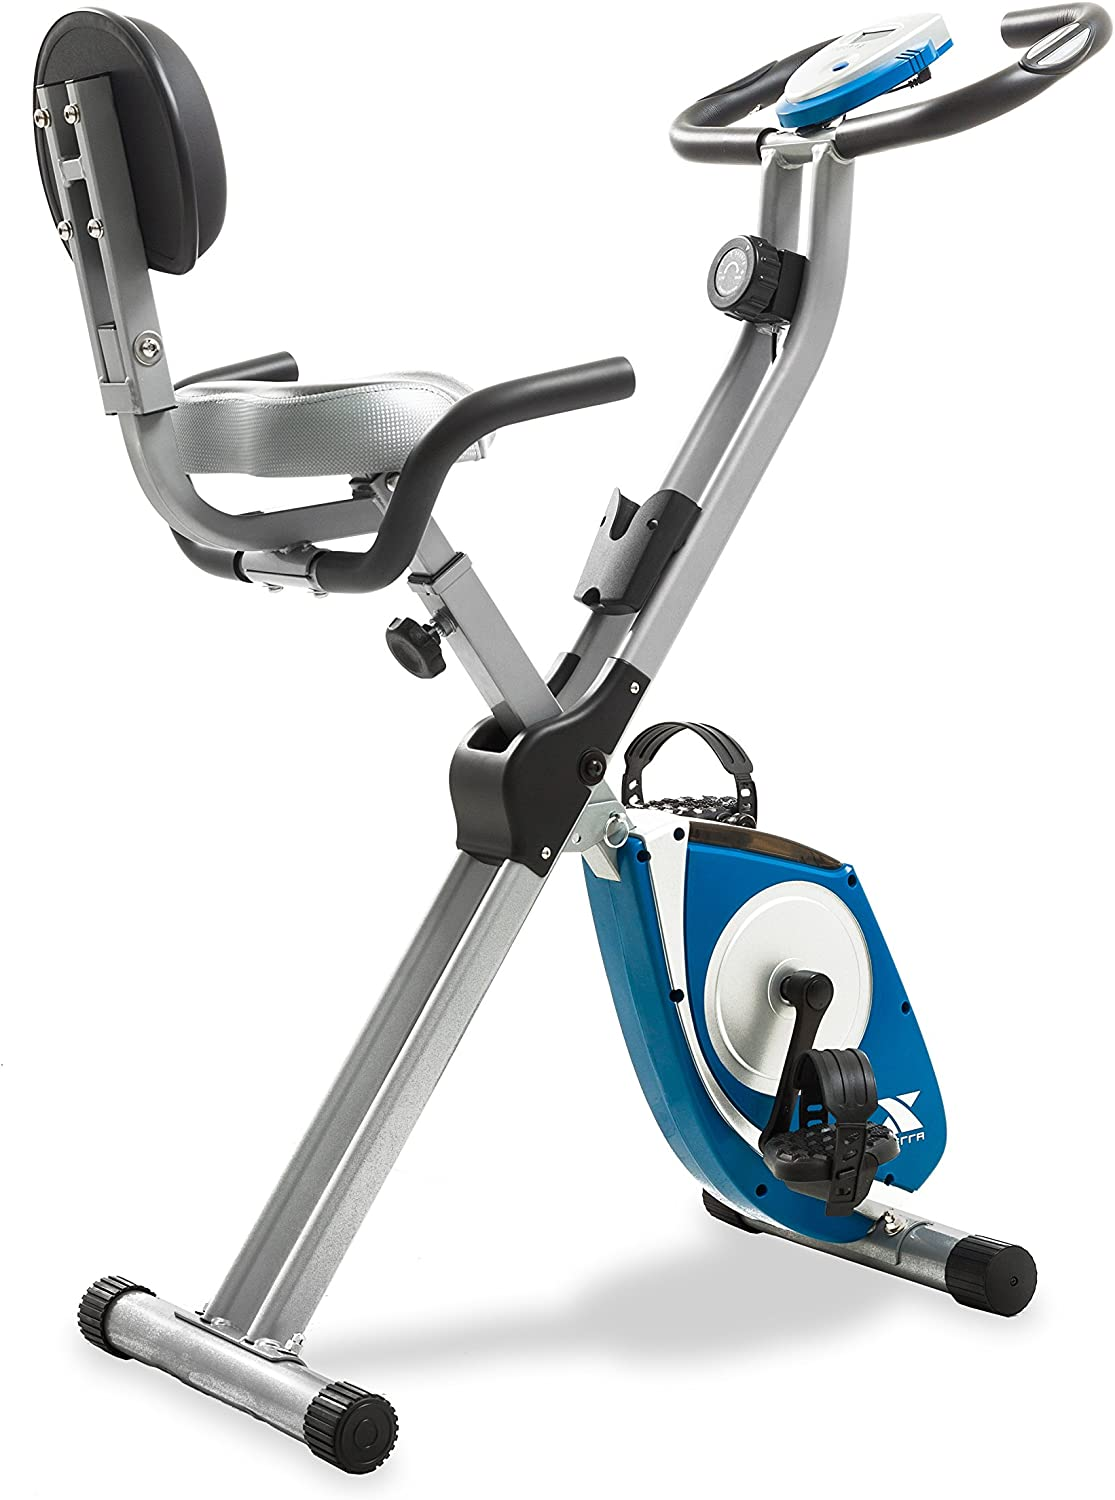 5 Best Exercise Bike For Bad Knees - Comparisons for 2020 3